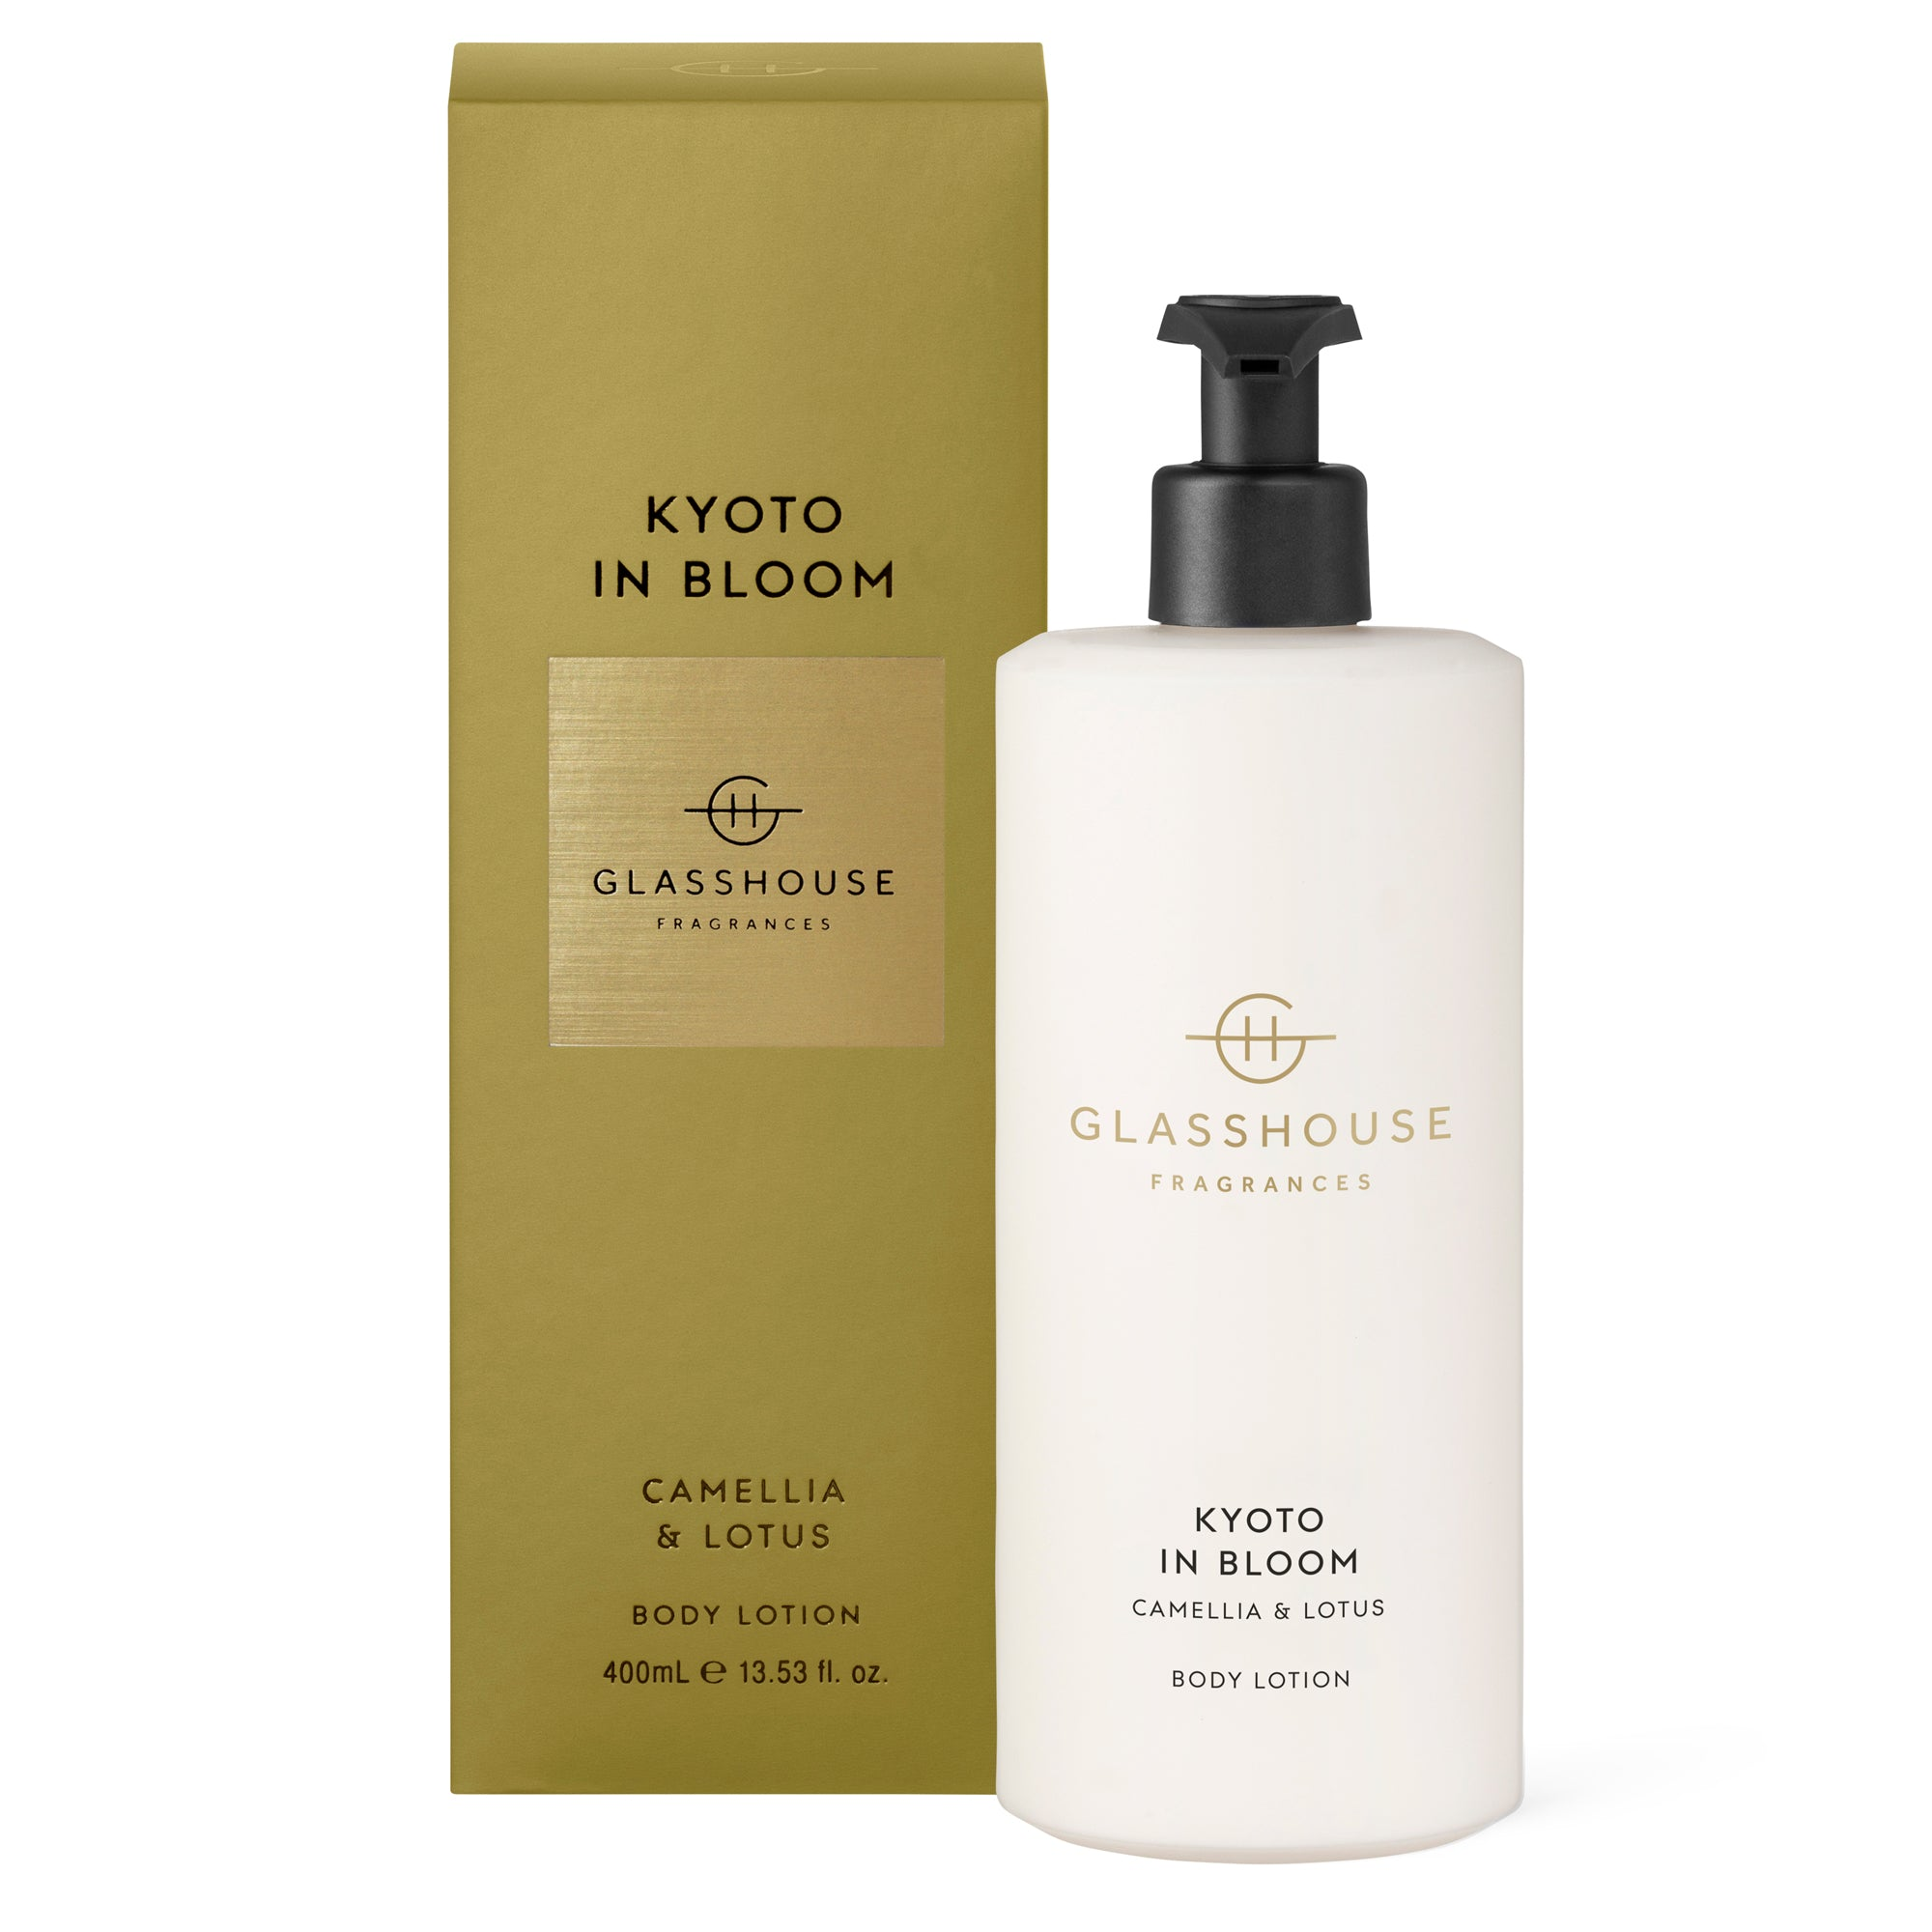 Body Lotion, 400ml